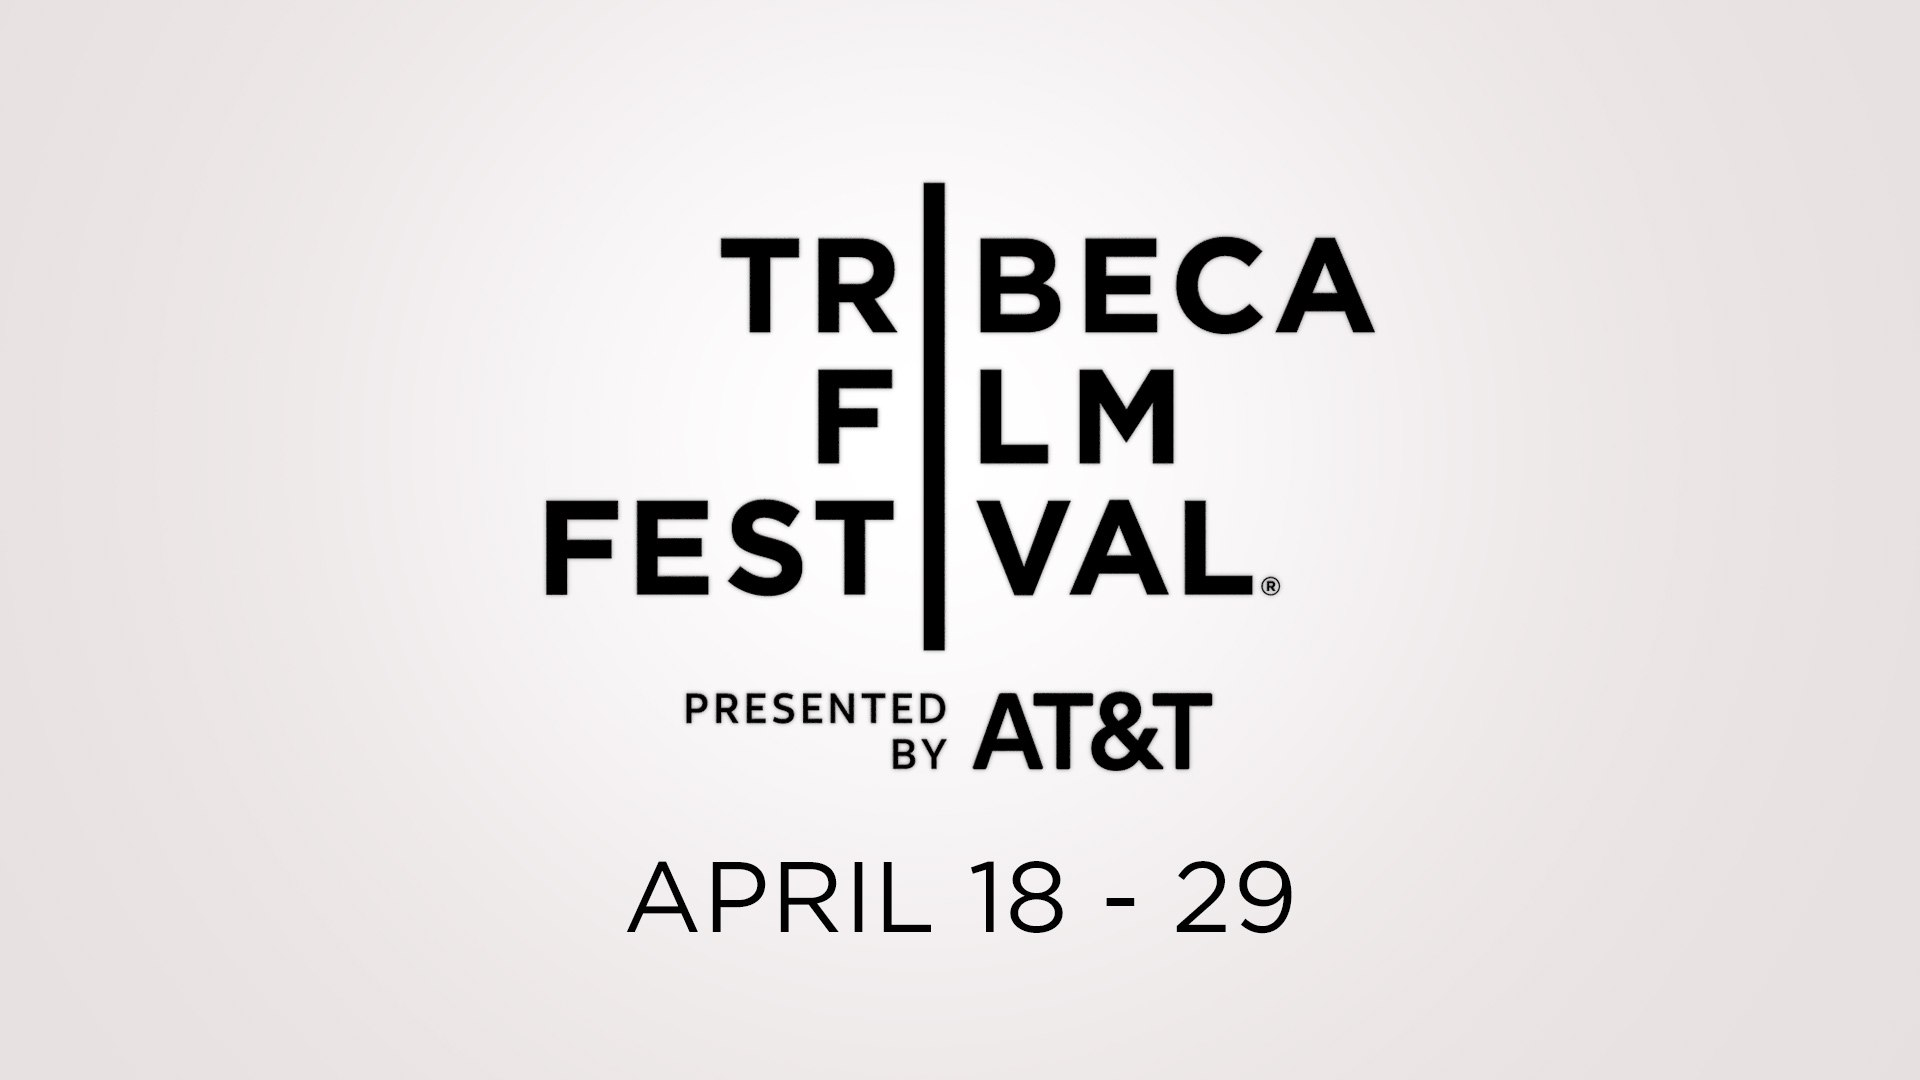 https://cinemaplanet.pt/wp-content/uploads/2018/04/1034874-17th-annual-tribeca-film-festival-announces-2018-dates-and-call-submissions.jpg